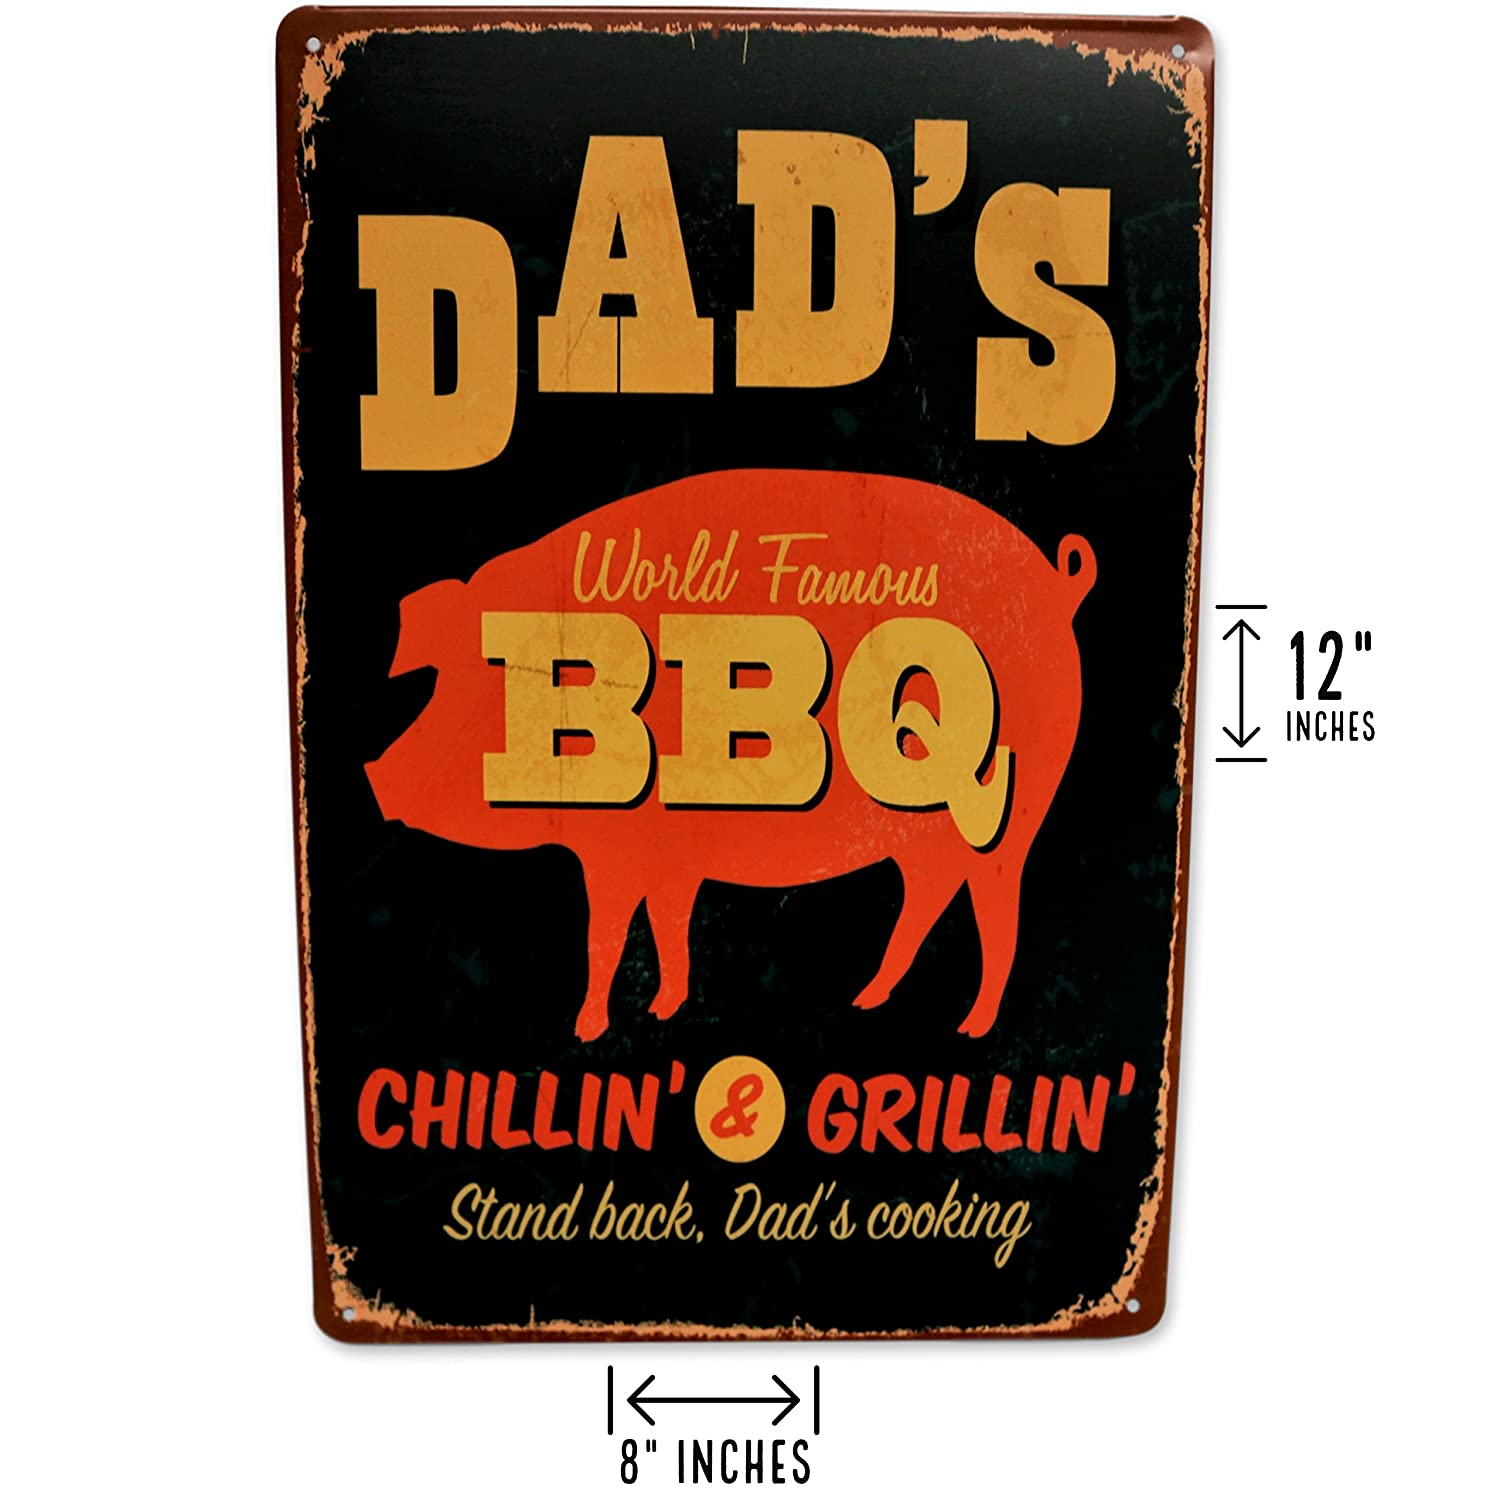 Man Cave or Bedroom Garage Backyard Grill area BBQ signs Size: 8x12 Save Directly Kitchen Dads BBQ Sign Retro Vintage BBQ Decor Perfect for your Home